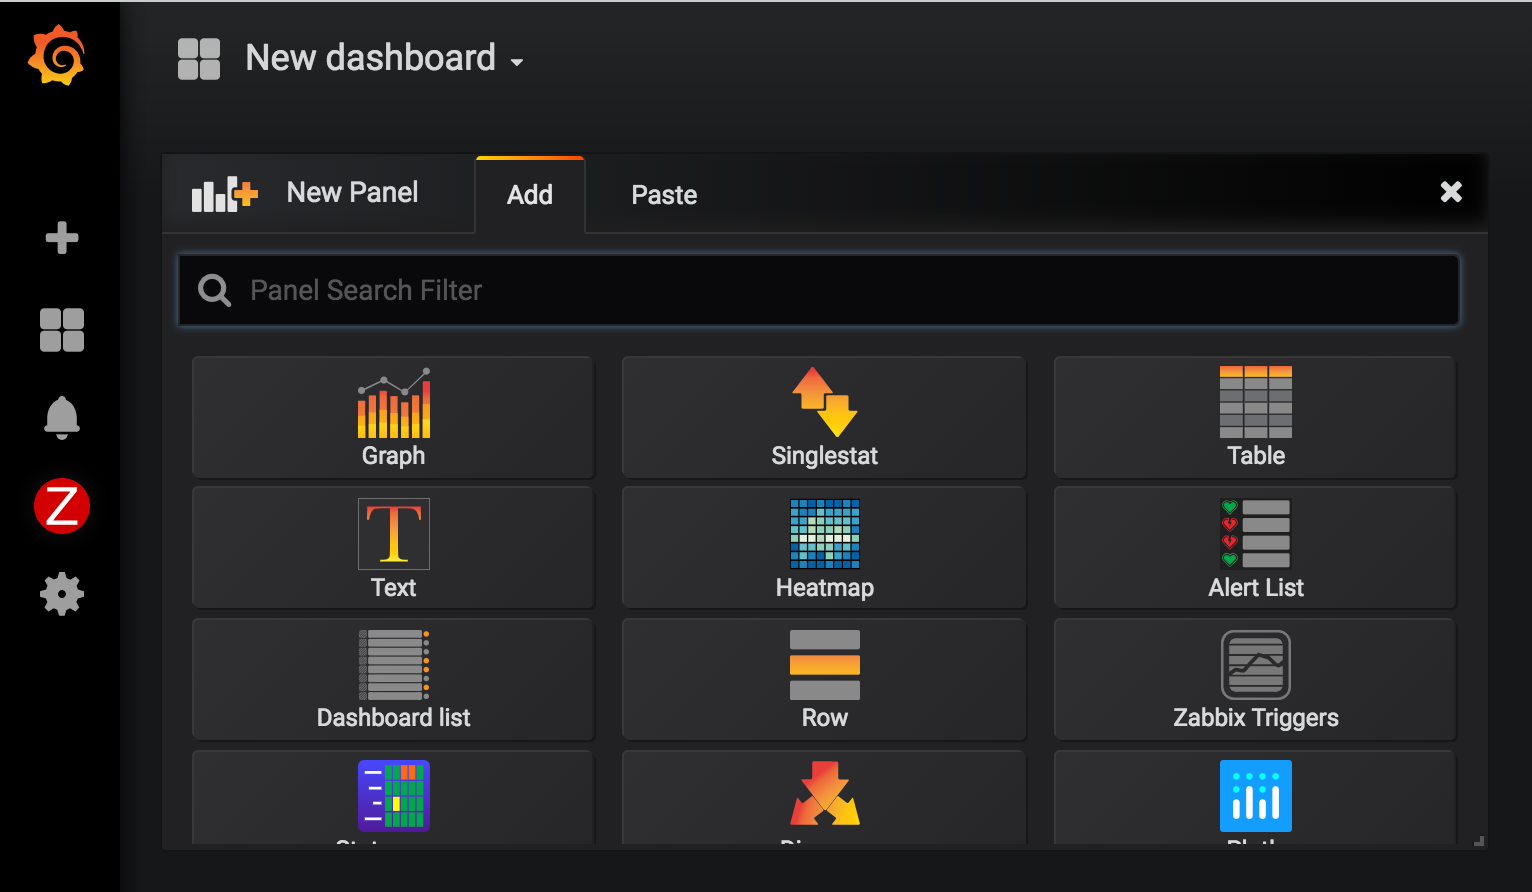 Graphing Zabbix Items with Grafana on CentOS 7 | Tyler Wright